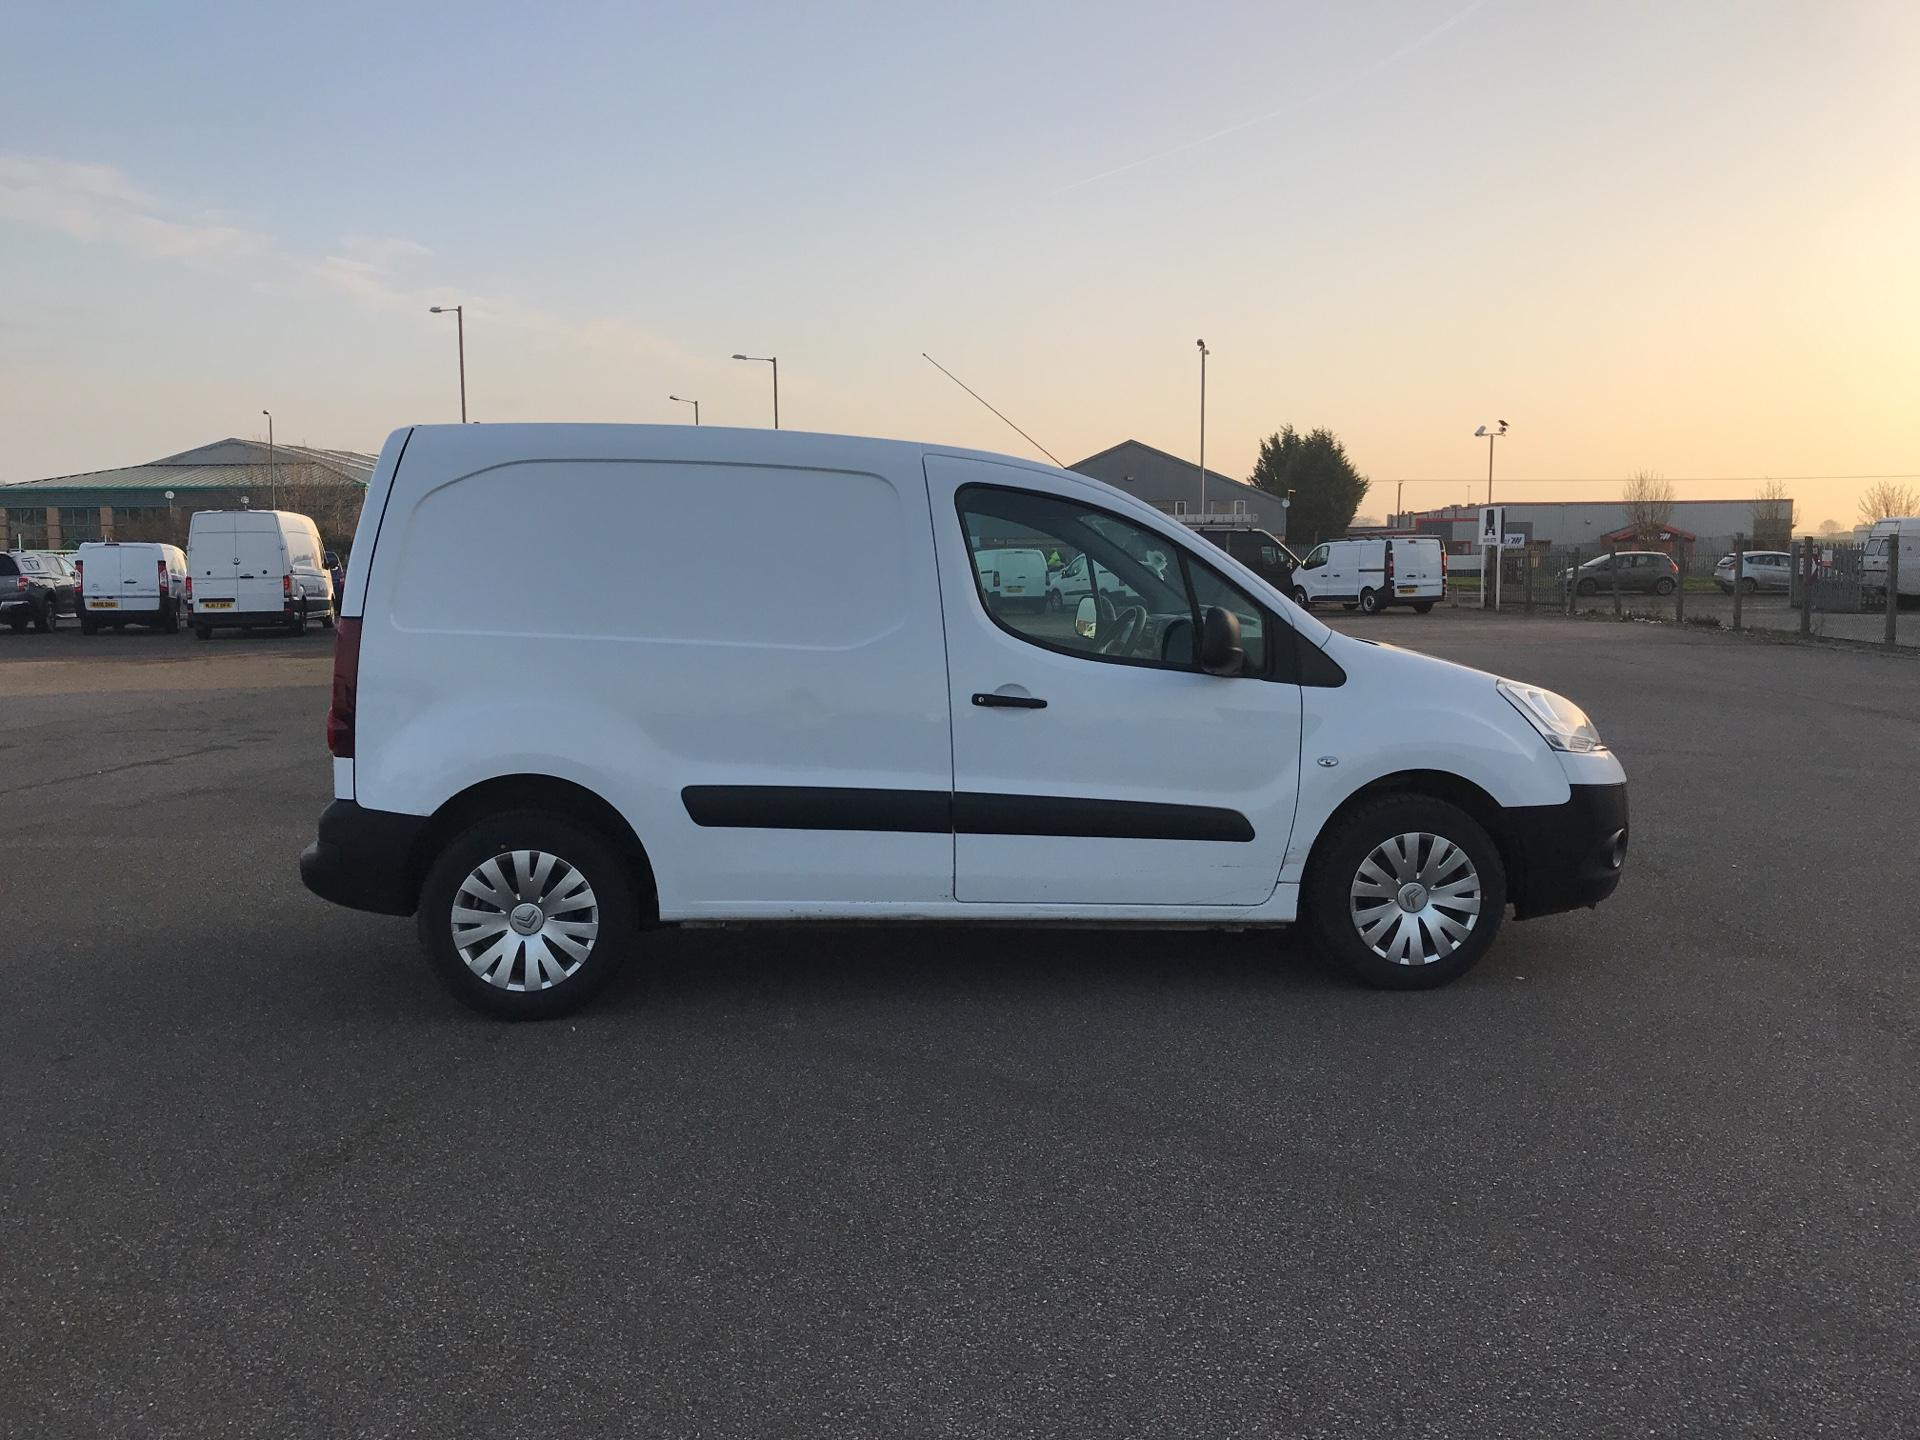 2014 Citroen Berlingo L1 DIESEL 1.6 HDI 625KG X 90PS (SLD) EURO 5. VALUE RANGE VEHICLE - CONDITION REFLECTED IN PRICE (BD64SVJ) Image 2